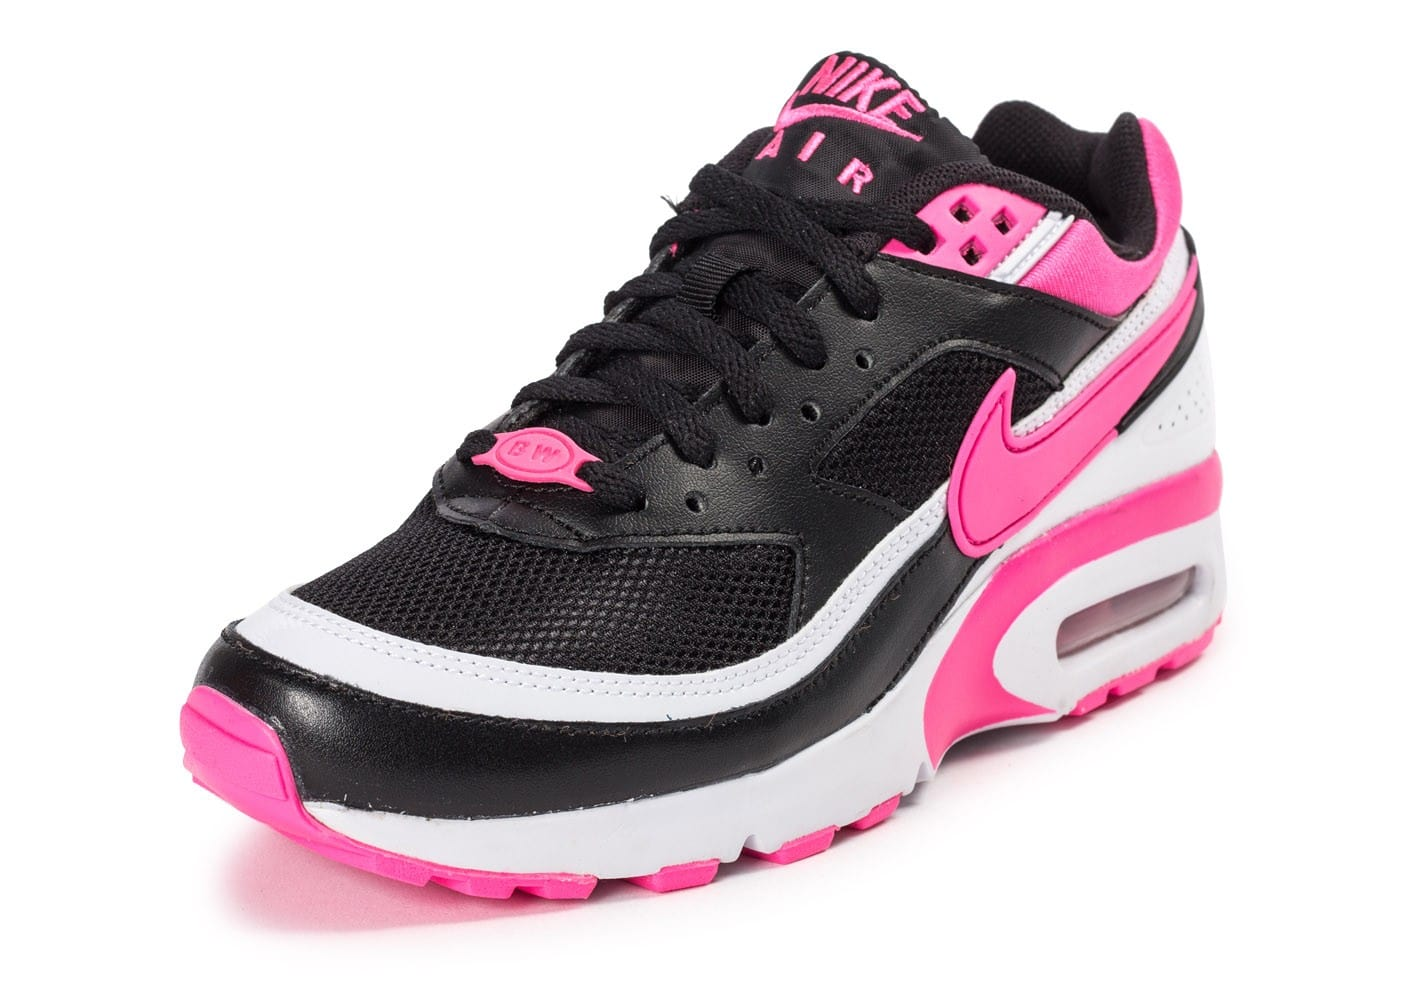 nike air max bw junior noire et rose chaussures chaussures chausport. Black Bedroom Furniture Sets. Home Design Ideas